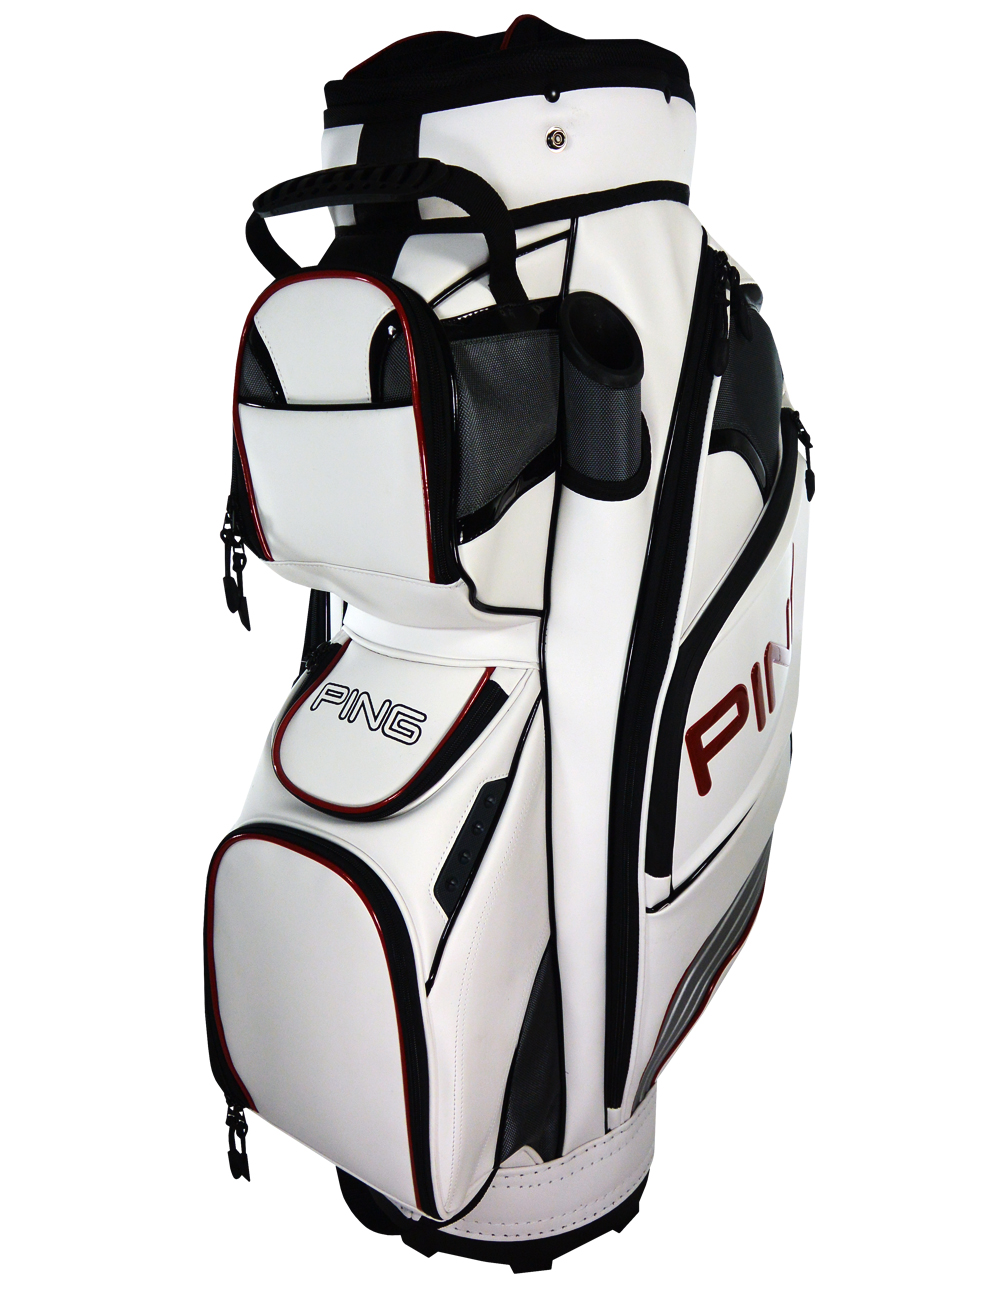 Ping Golf 2014 Dlx Cart Bag on ping golf bag